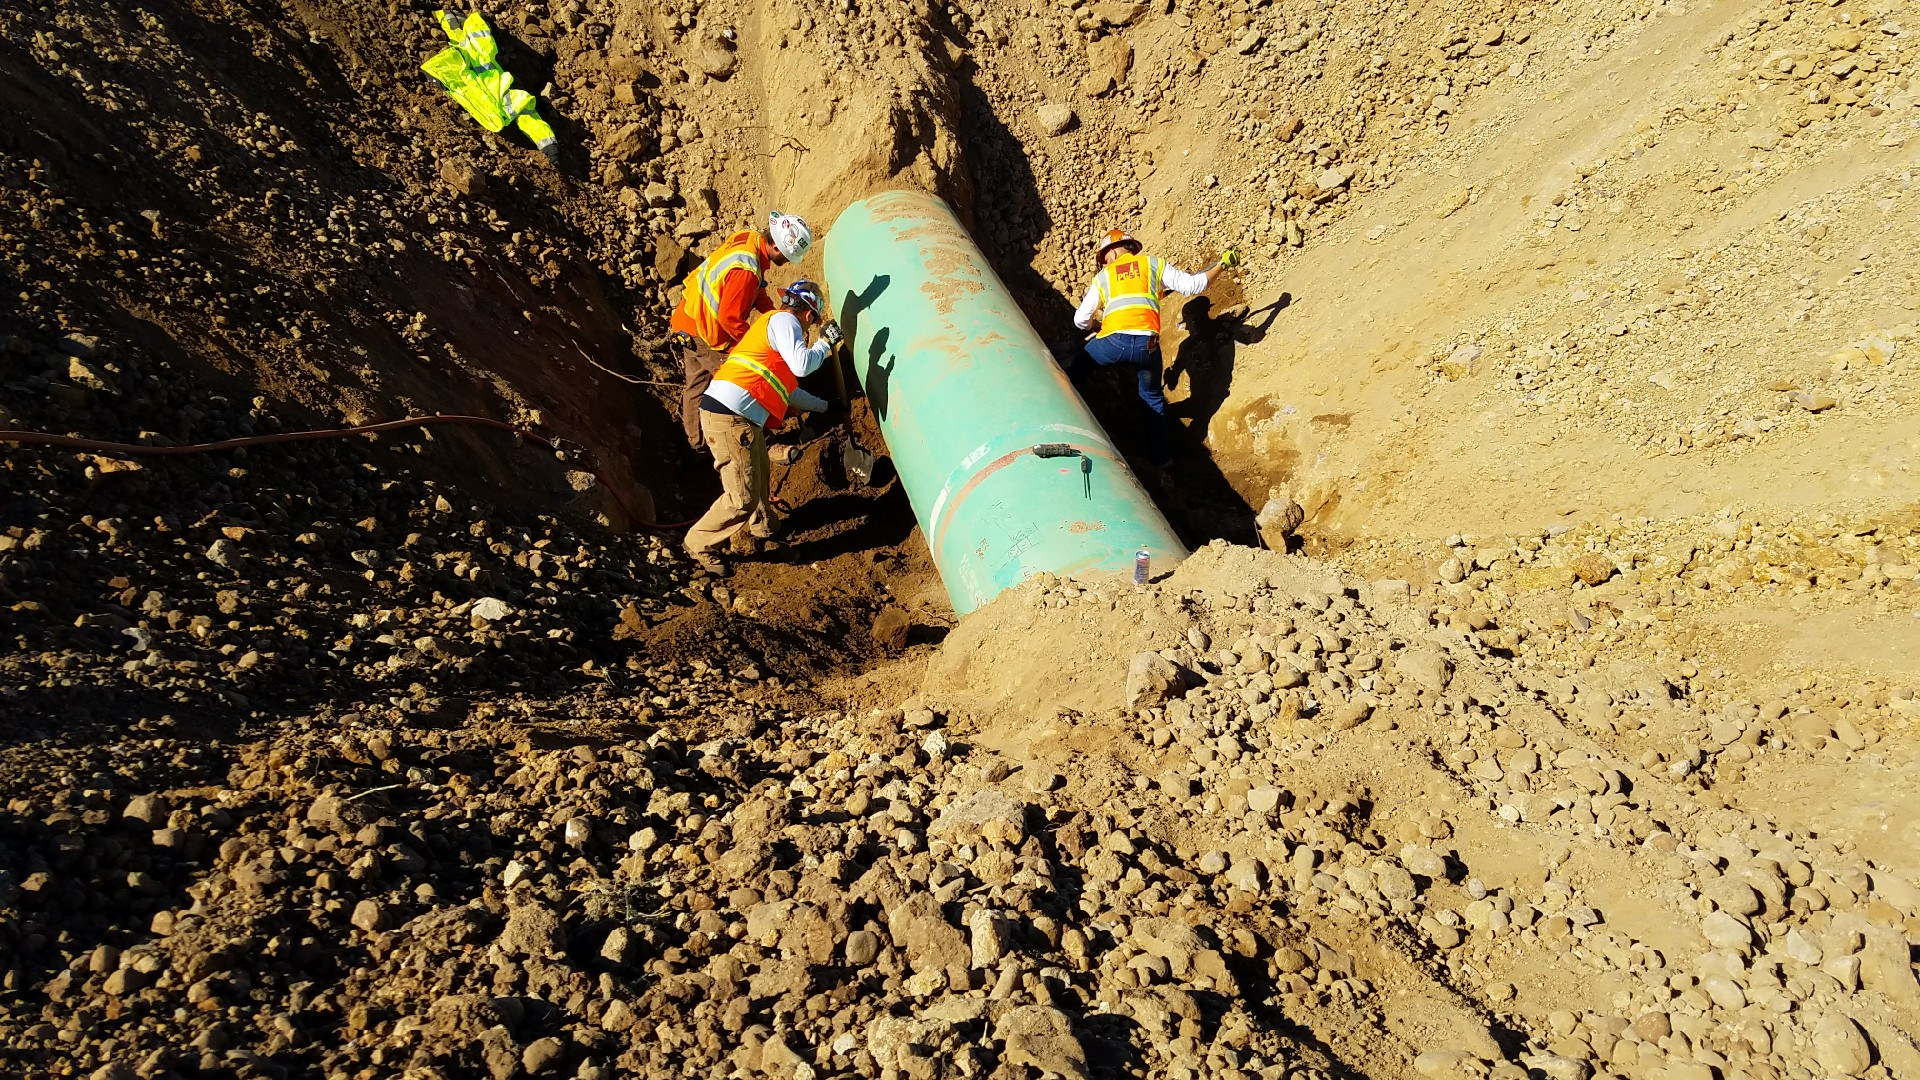 Direct Examination - We provide a wide range of direct examination services. Our DE services include microbiological induced corrosion testing, NACE coating inspections,direct pipe inspections, weld inspections, cathodic protection readings, and corrosion investigation. Contact us for further details on direct examination services.